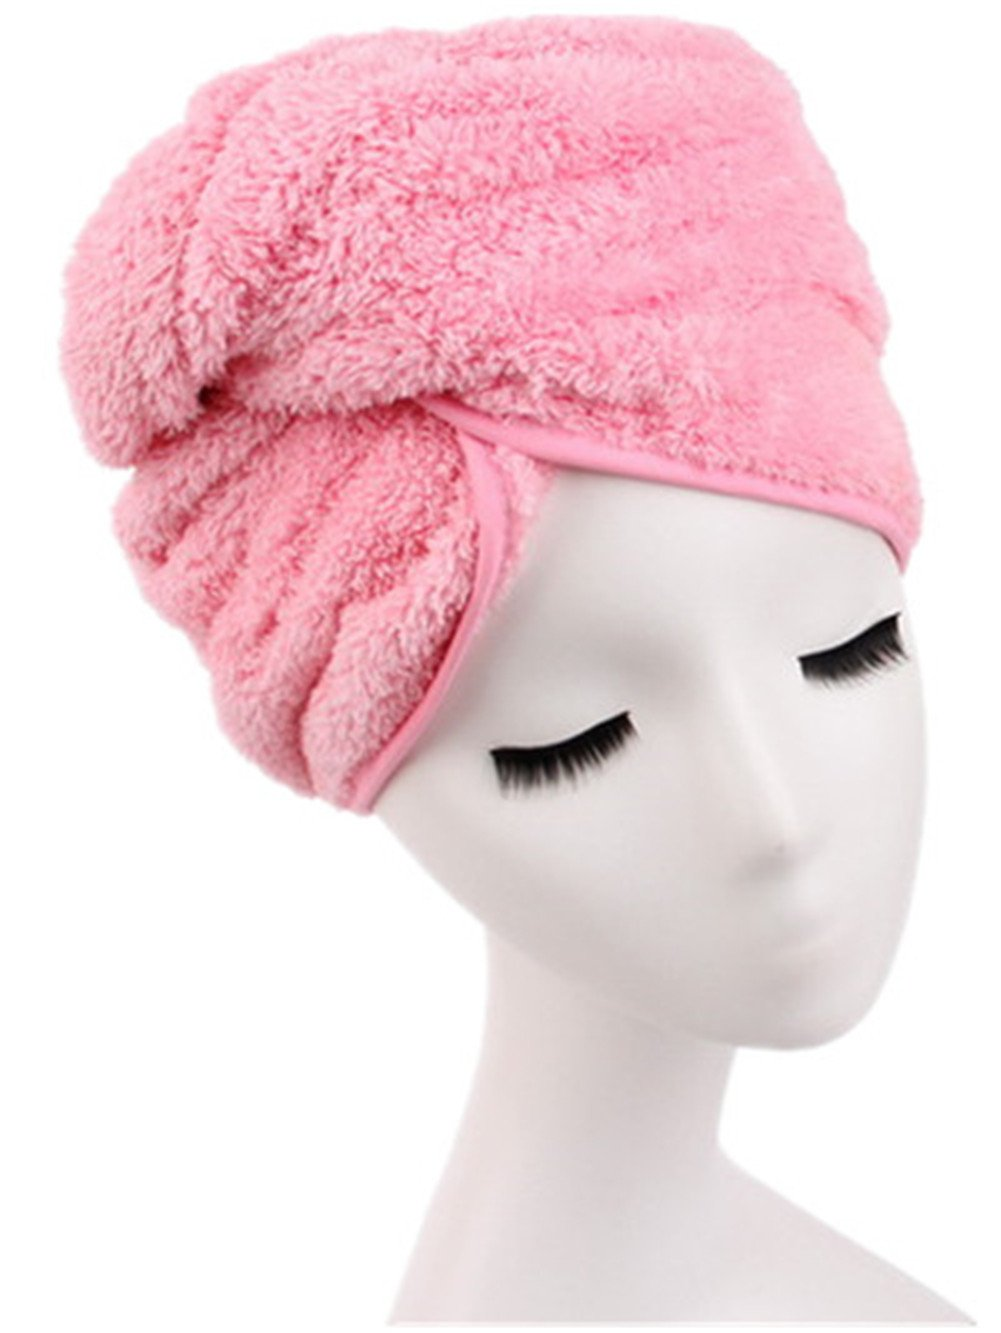 Moolecole Fashion Absorbent Microfiber Hair Dry Towel Thickened Shower Cap Hair Turban Quick Dry Hat Cap Blue